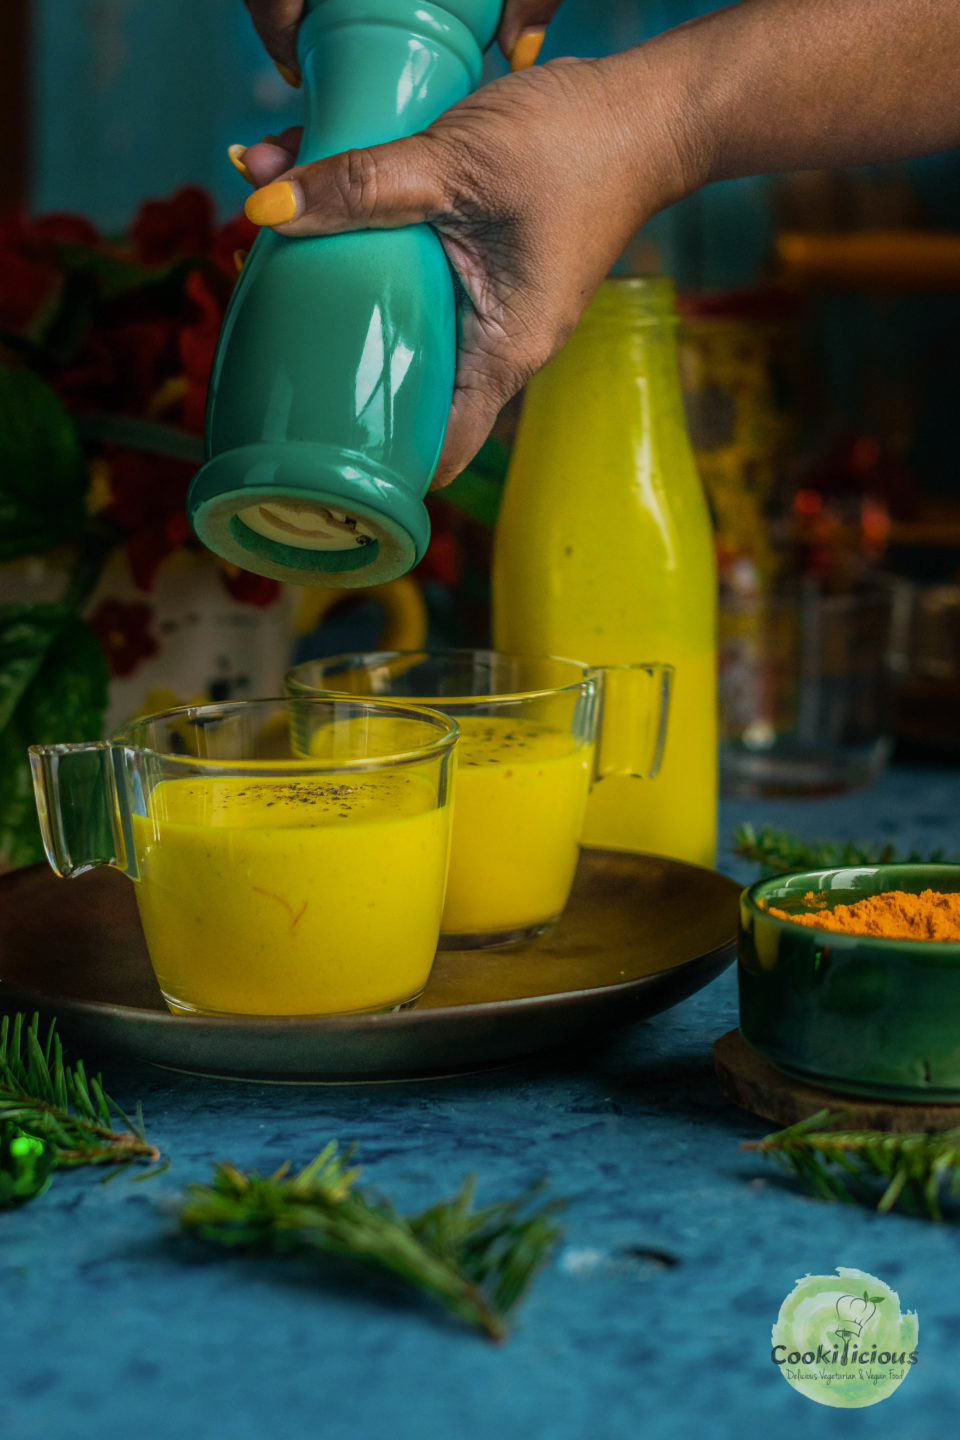 a hand adding freshly crushed pepper over a glass of Iced Golden Milk